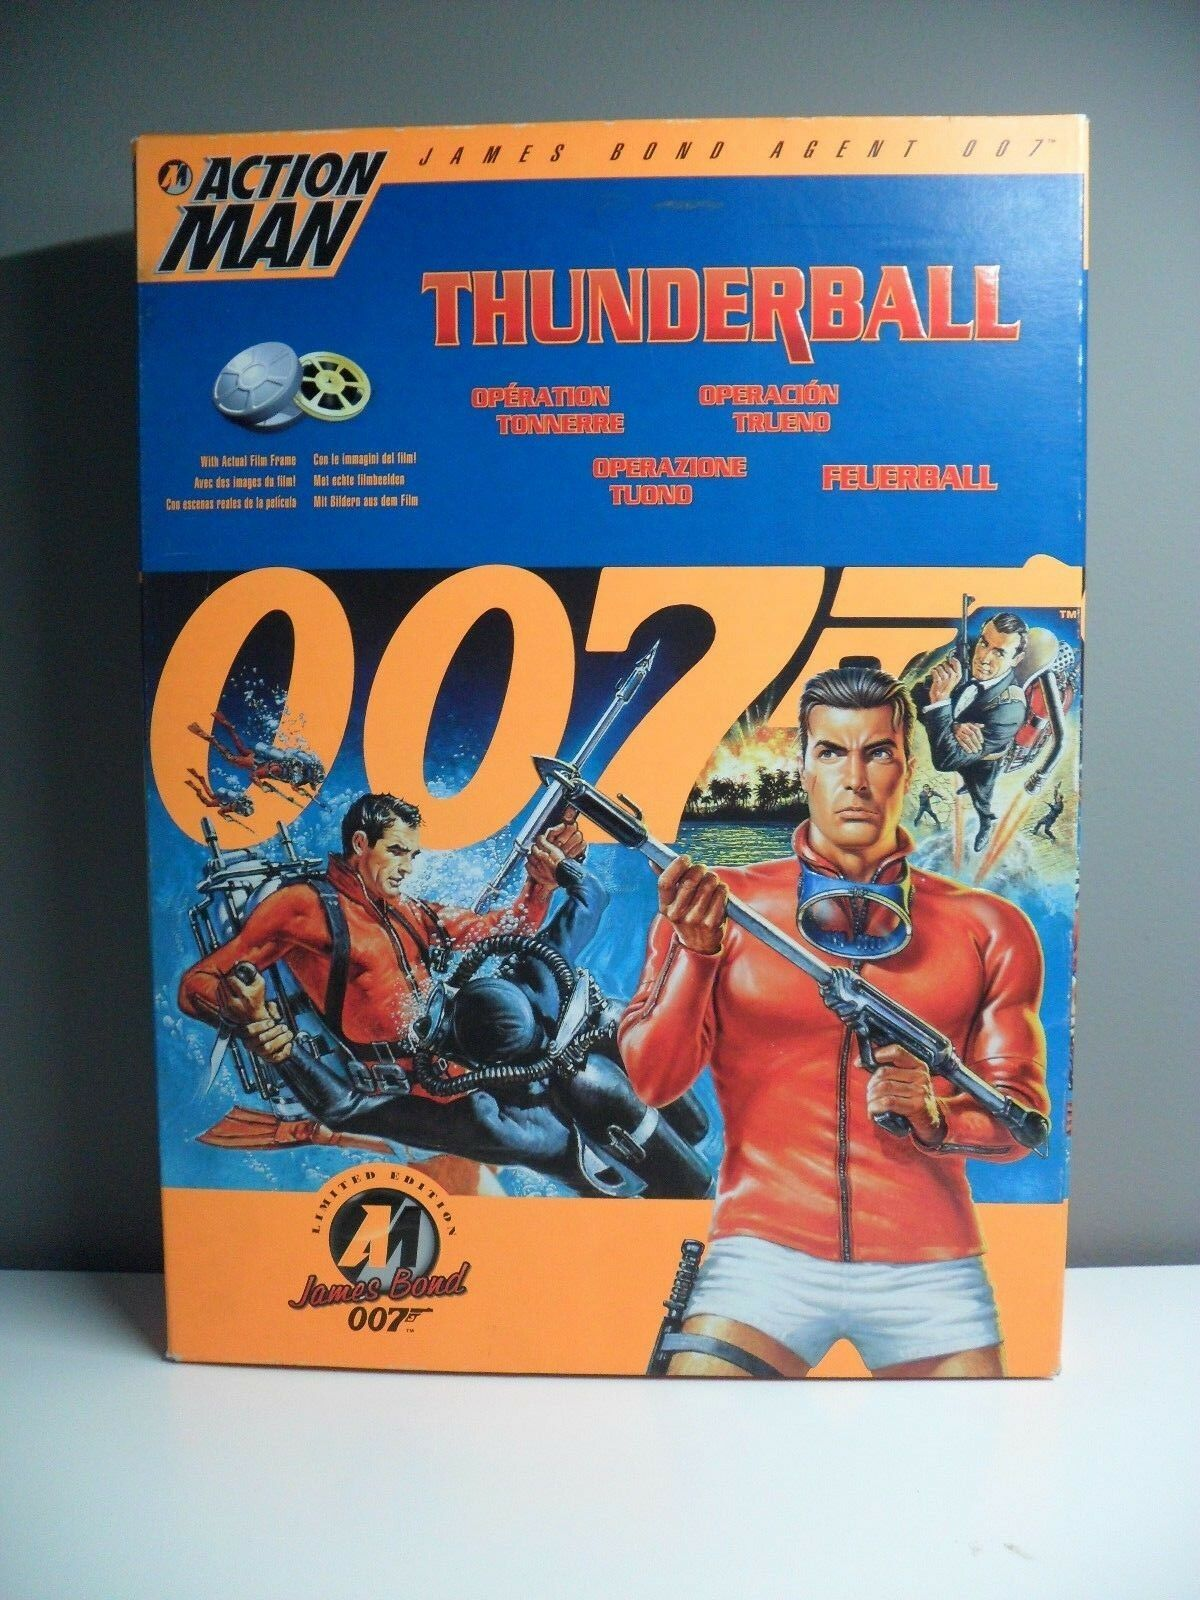 RARE NEW GI JOE ACTION MAN FIGURE JAMES BOND THUNDERBALL  MOVIE 12